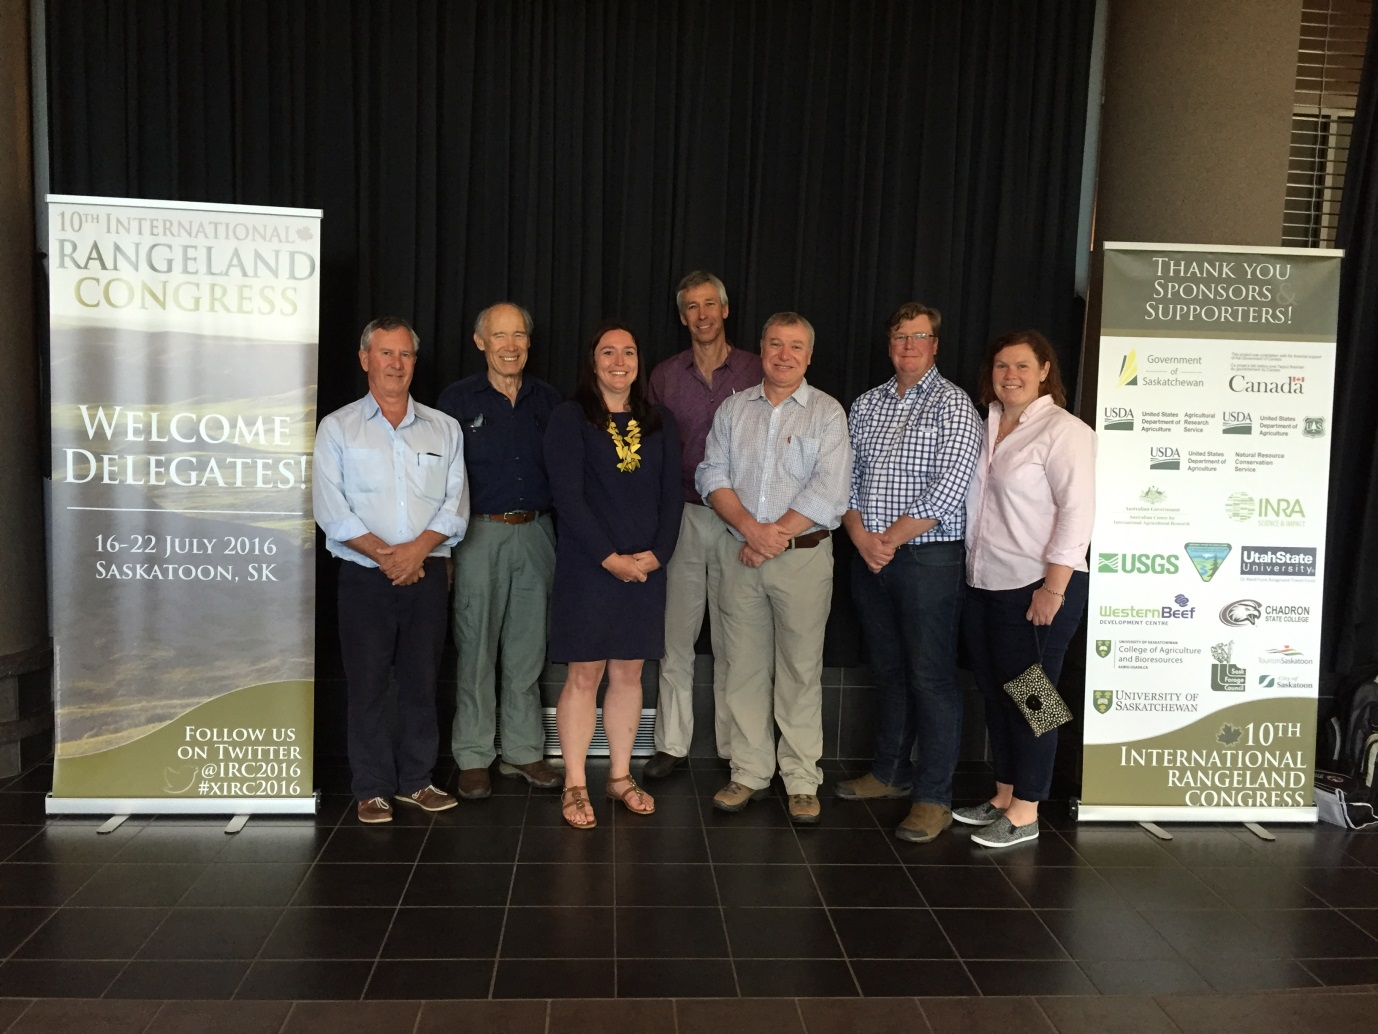 PPMT Project team at the IRC. (L-R) Roy Chisholm (Napperby Station), Houston (Qld DAF), Sally Leigo (DPIR), Pieter Conradie (DPIR), David Phelps (Qld DAF), Tim Driver and Ms Amy McArdle (Precision Pastoral Pty Ltd).